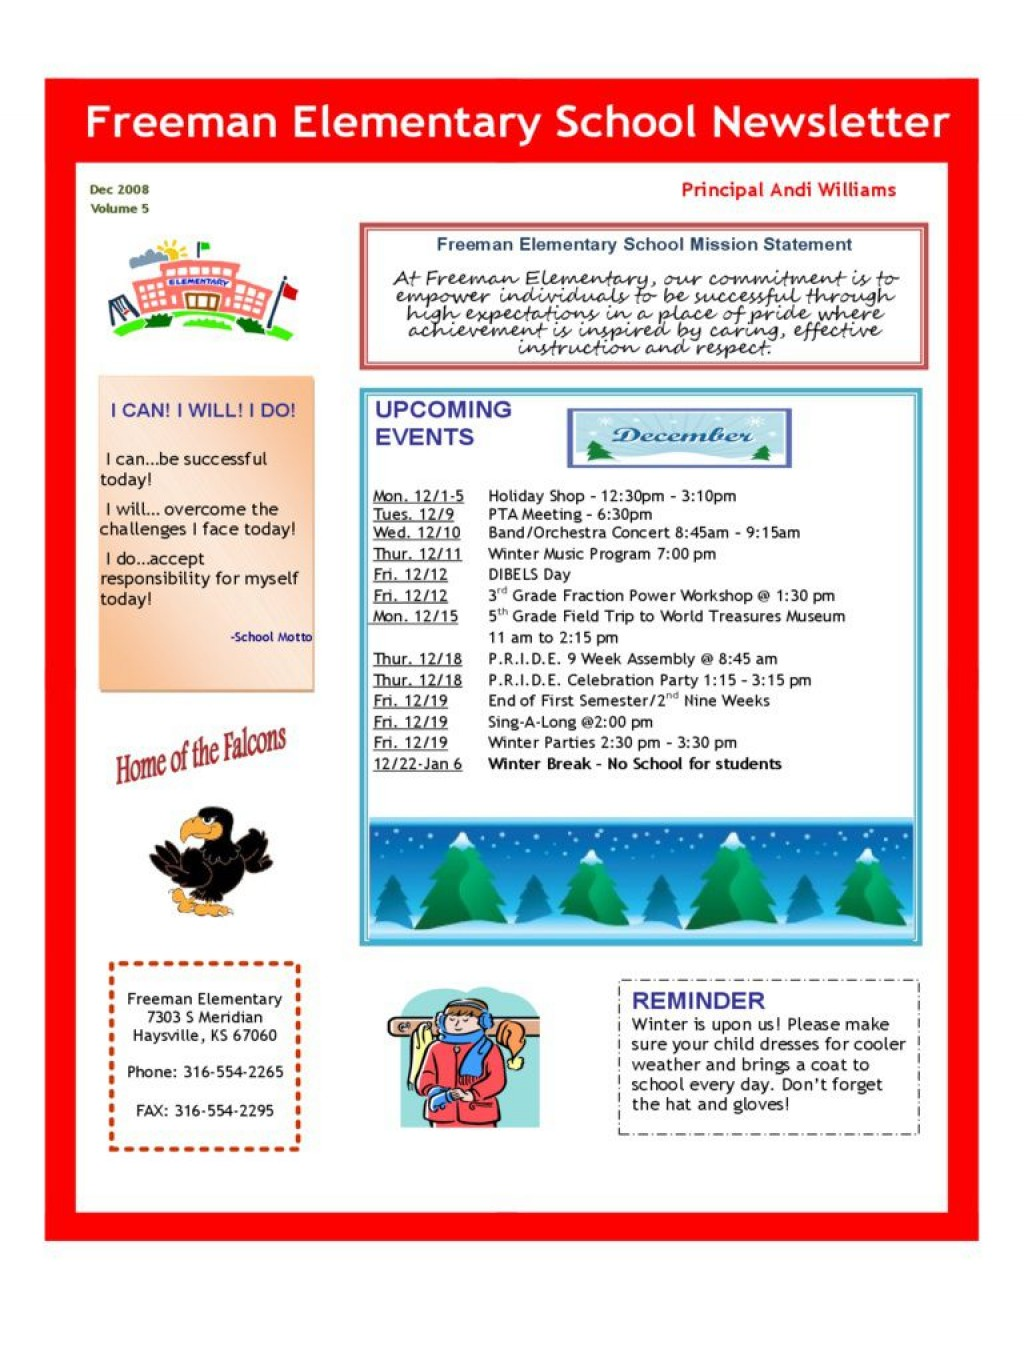 003 Unbelievable School Newsletter Template Word Highest Quality  Free Classroom For MicrosoftLarge